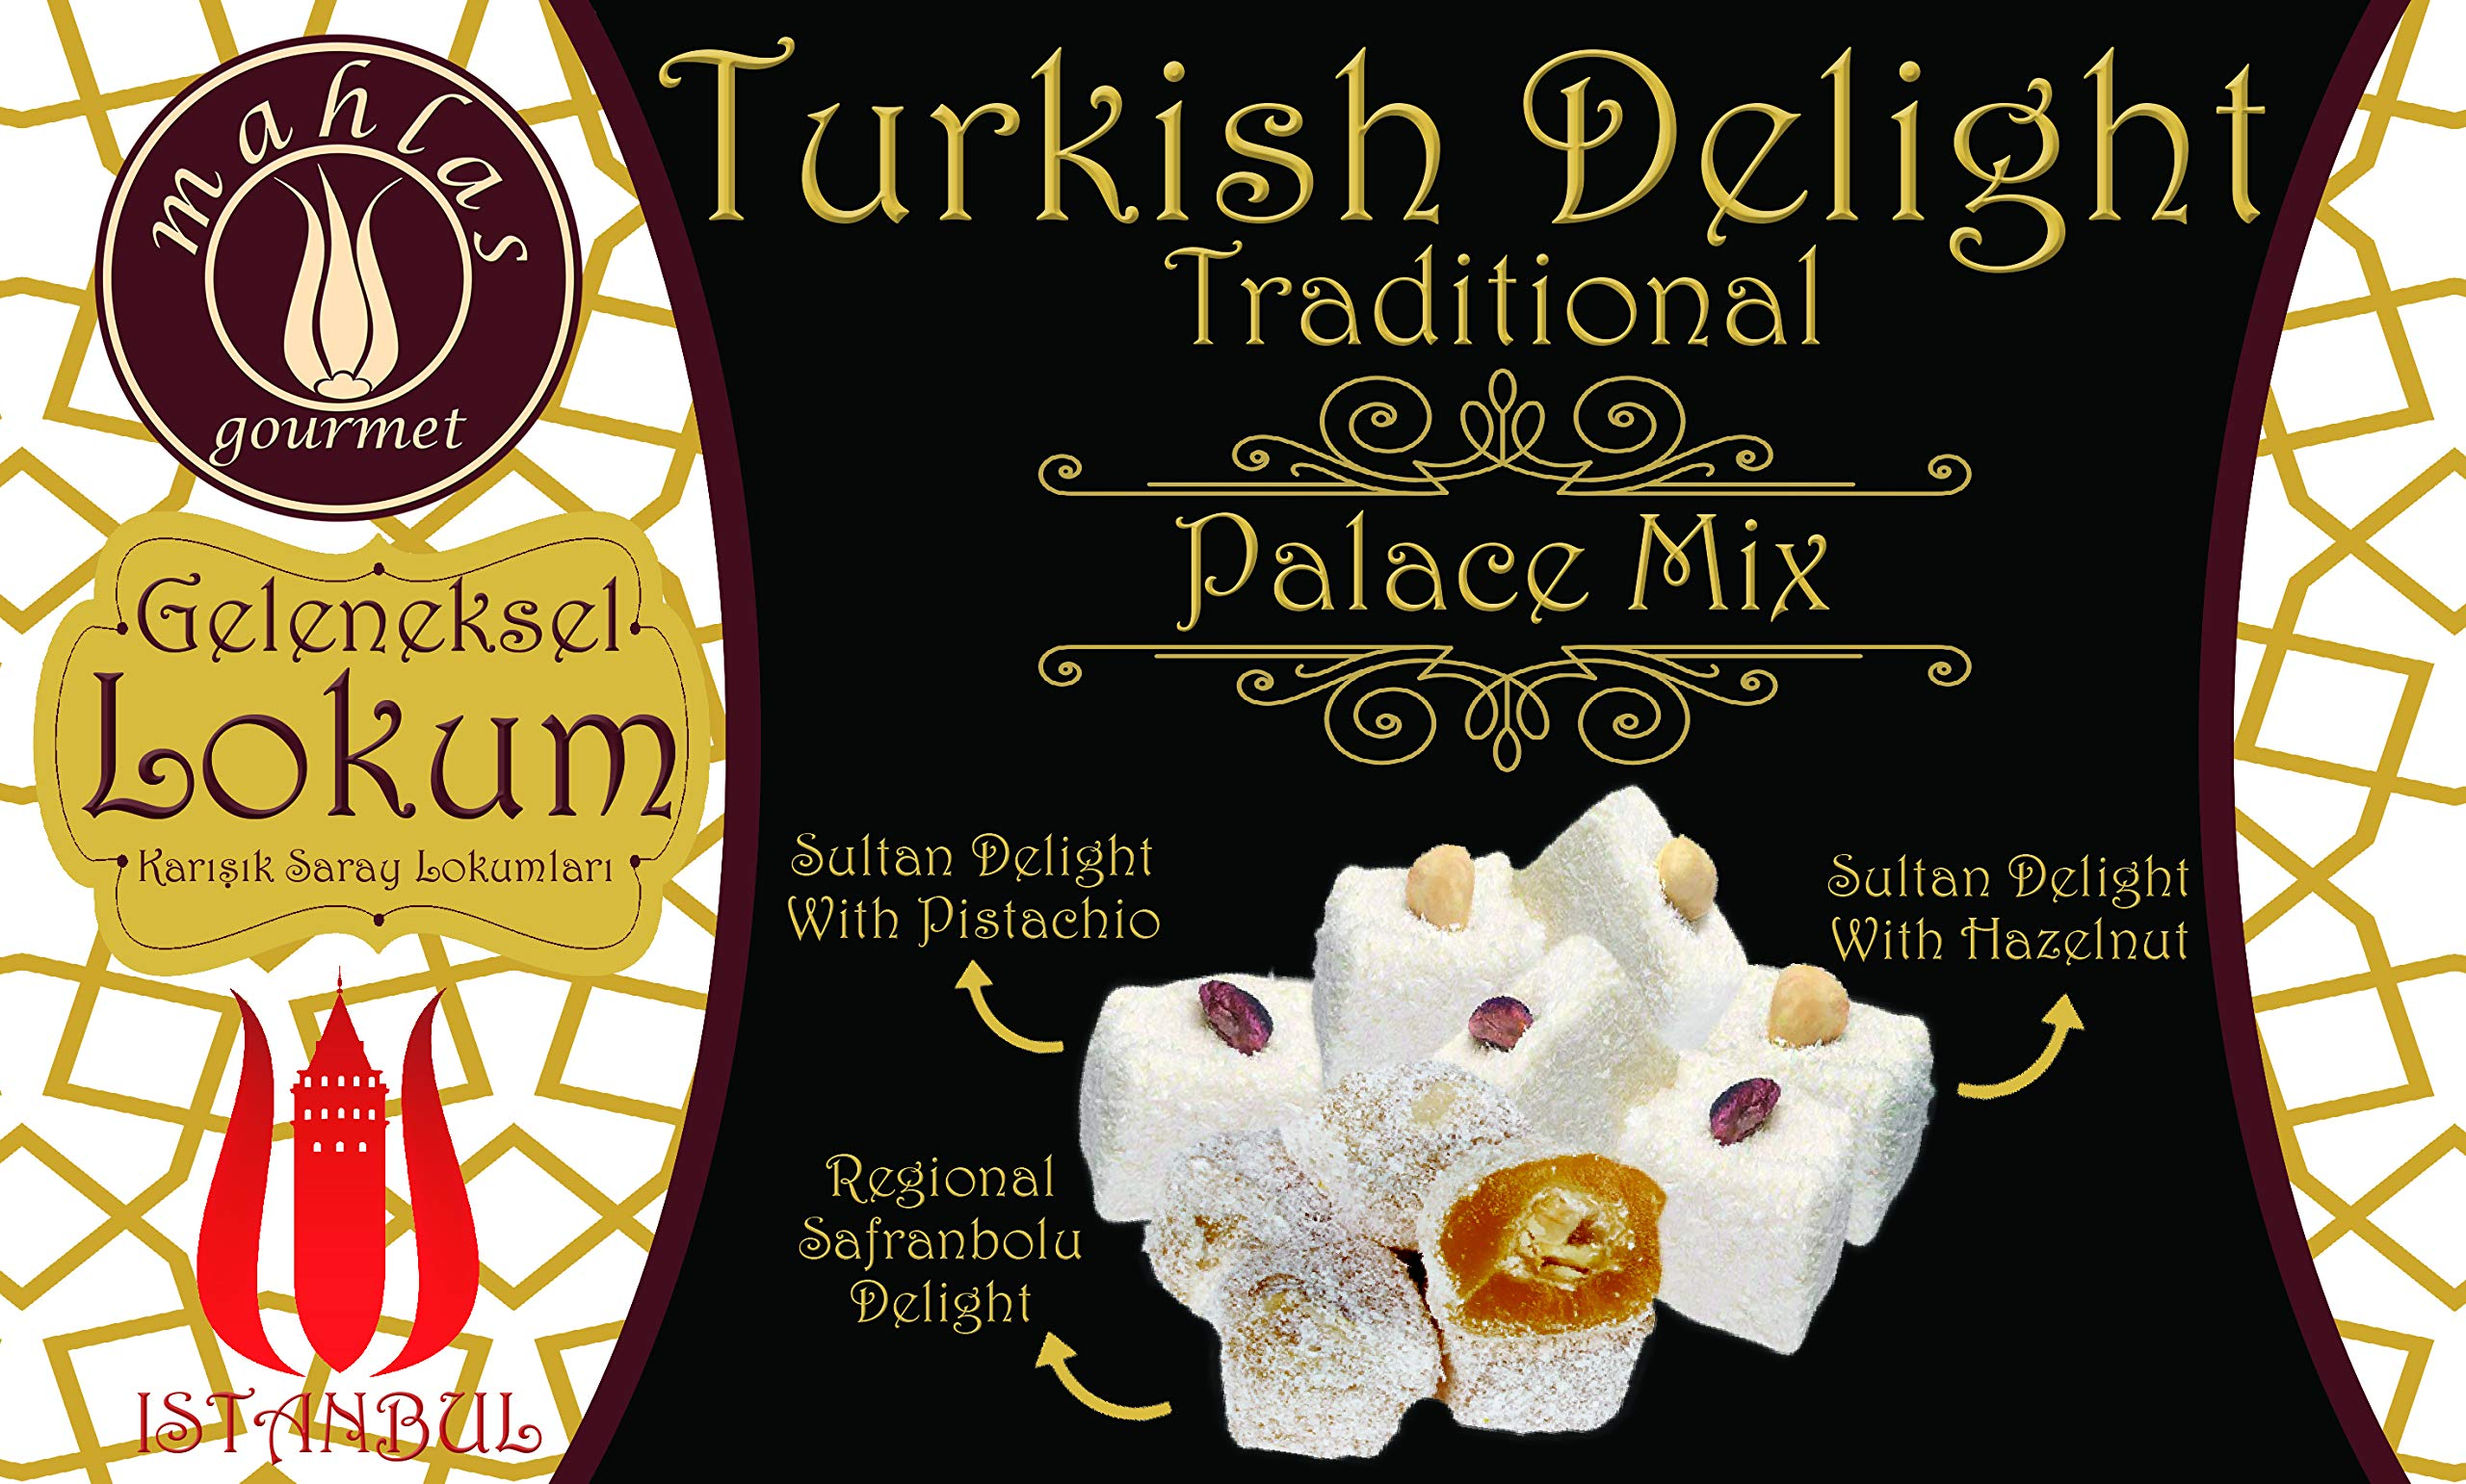 Mahlas Gourmet Turkish Delight - Traditional Sweet Halva From The 17th Century - Vegan Dessert With Pistachio And Hazelnut by Mahlas Gourmet (Image #4)